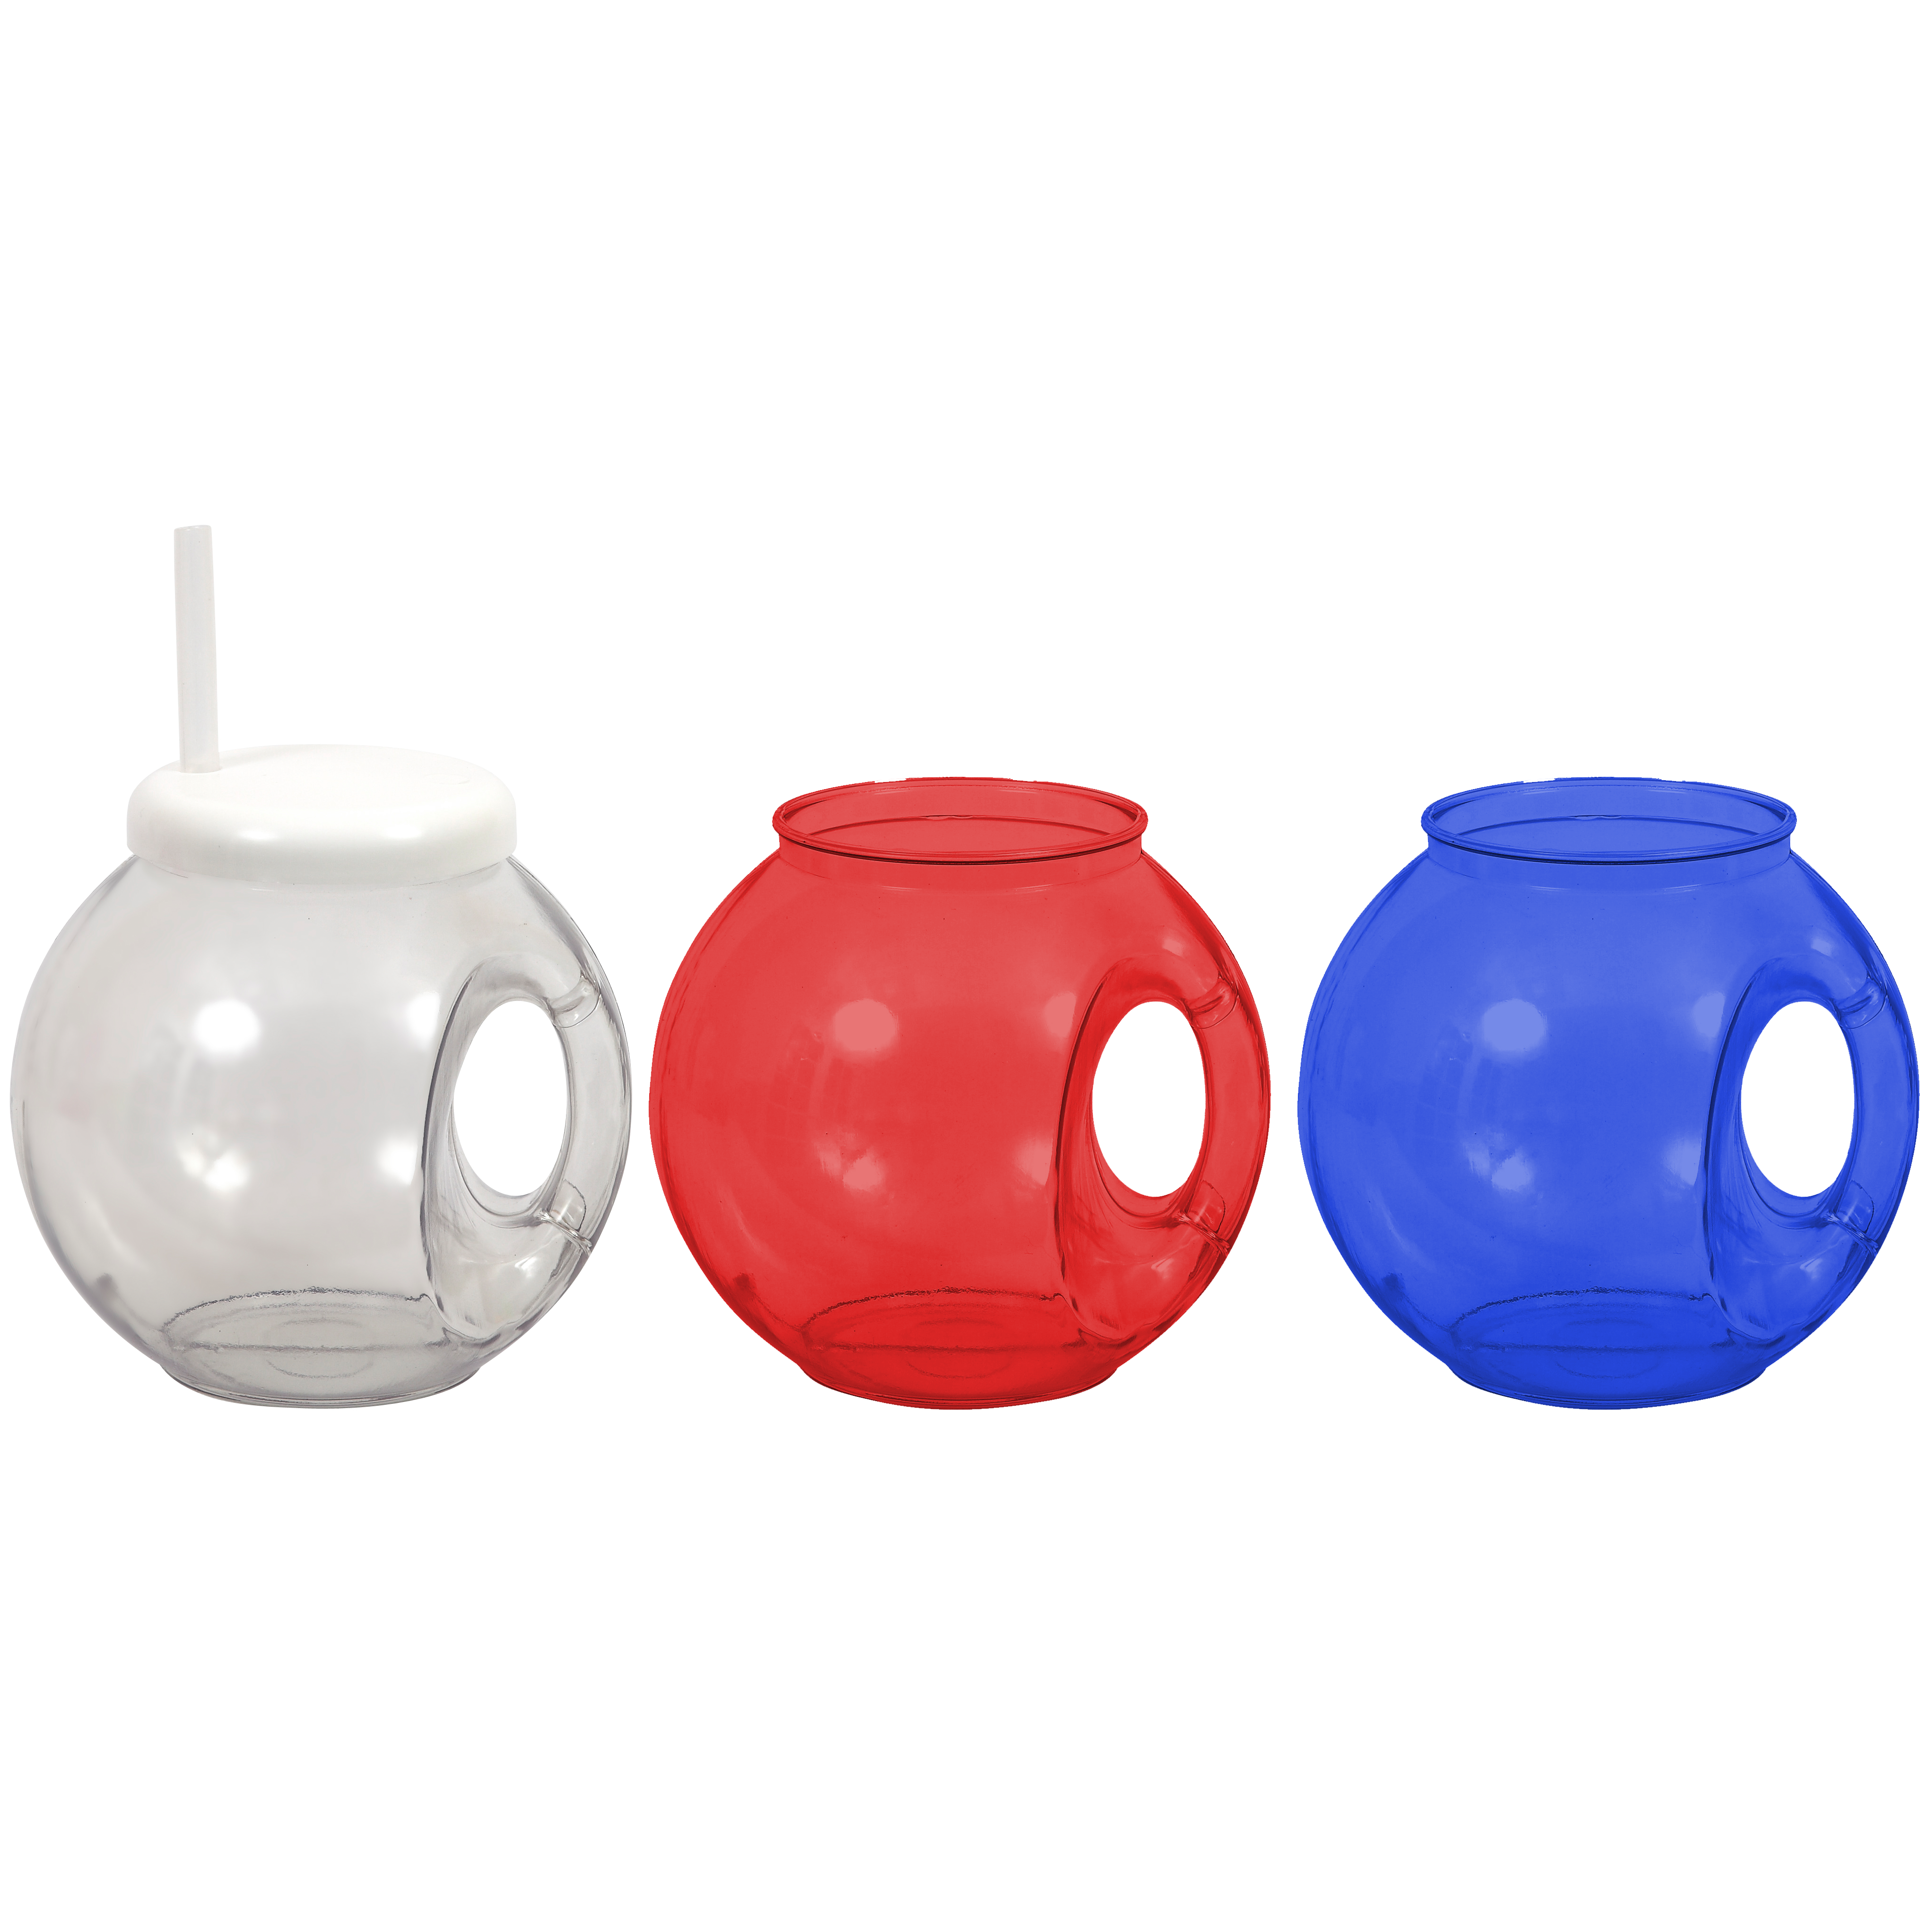 Handled Fish Bowl Cup Sippers By Design